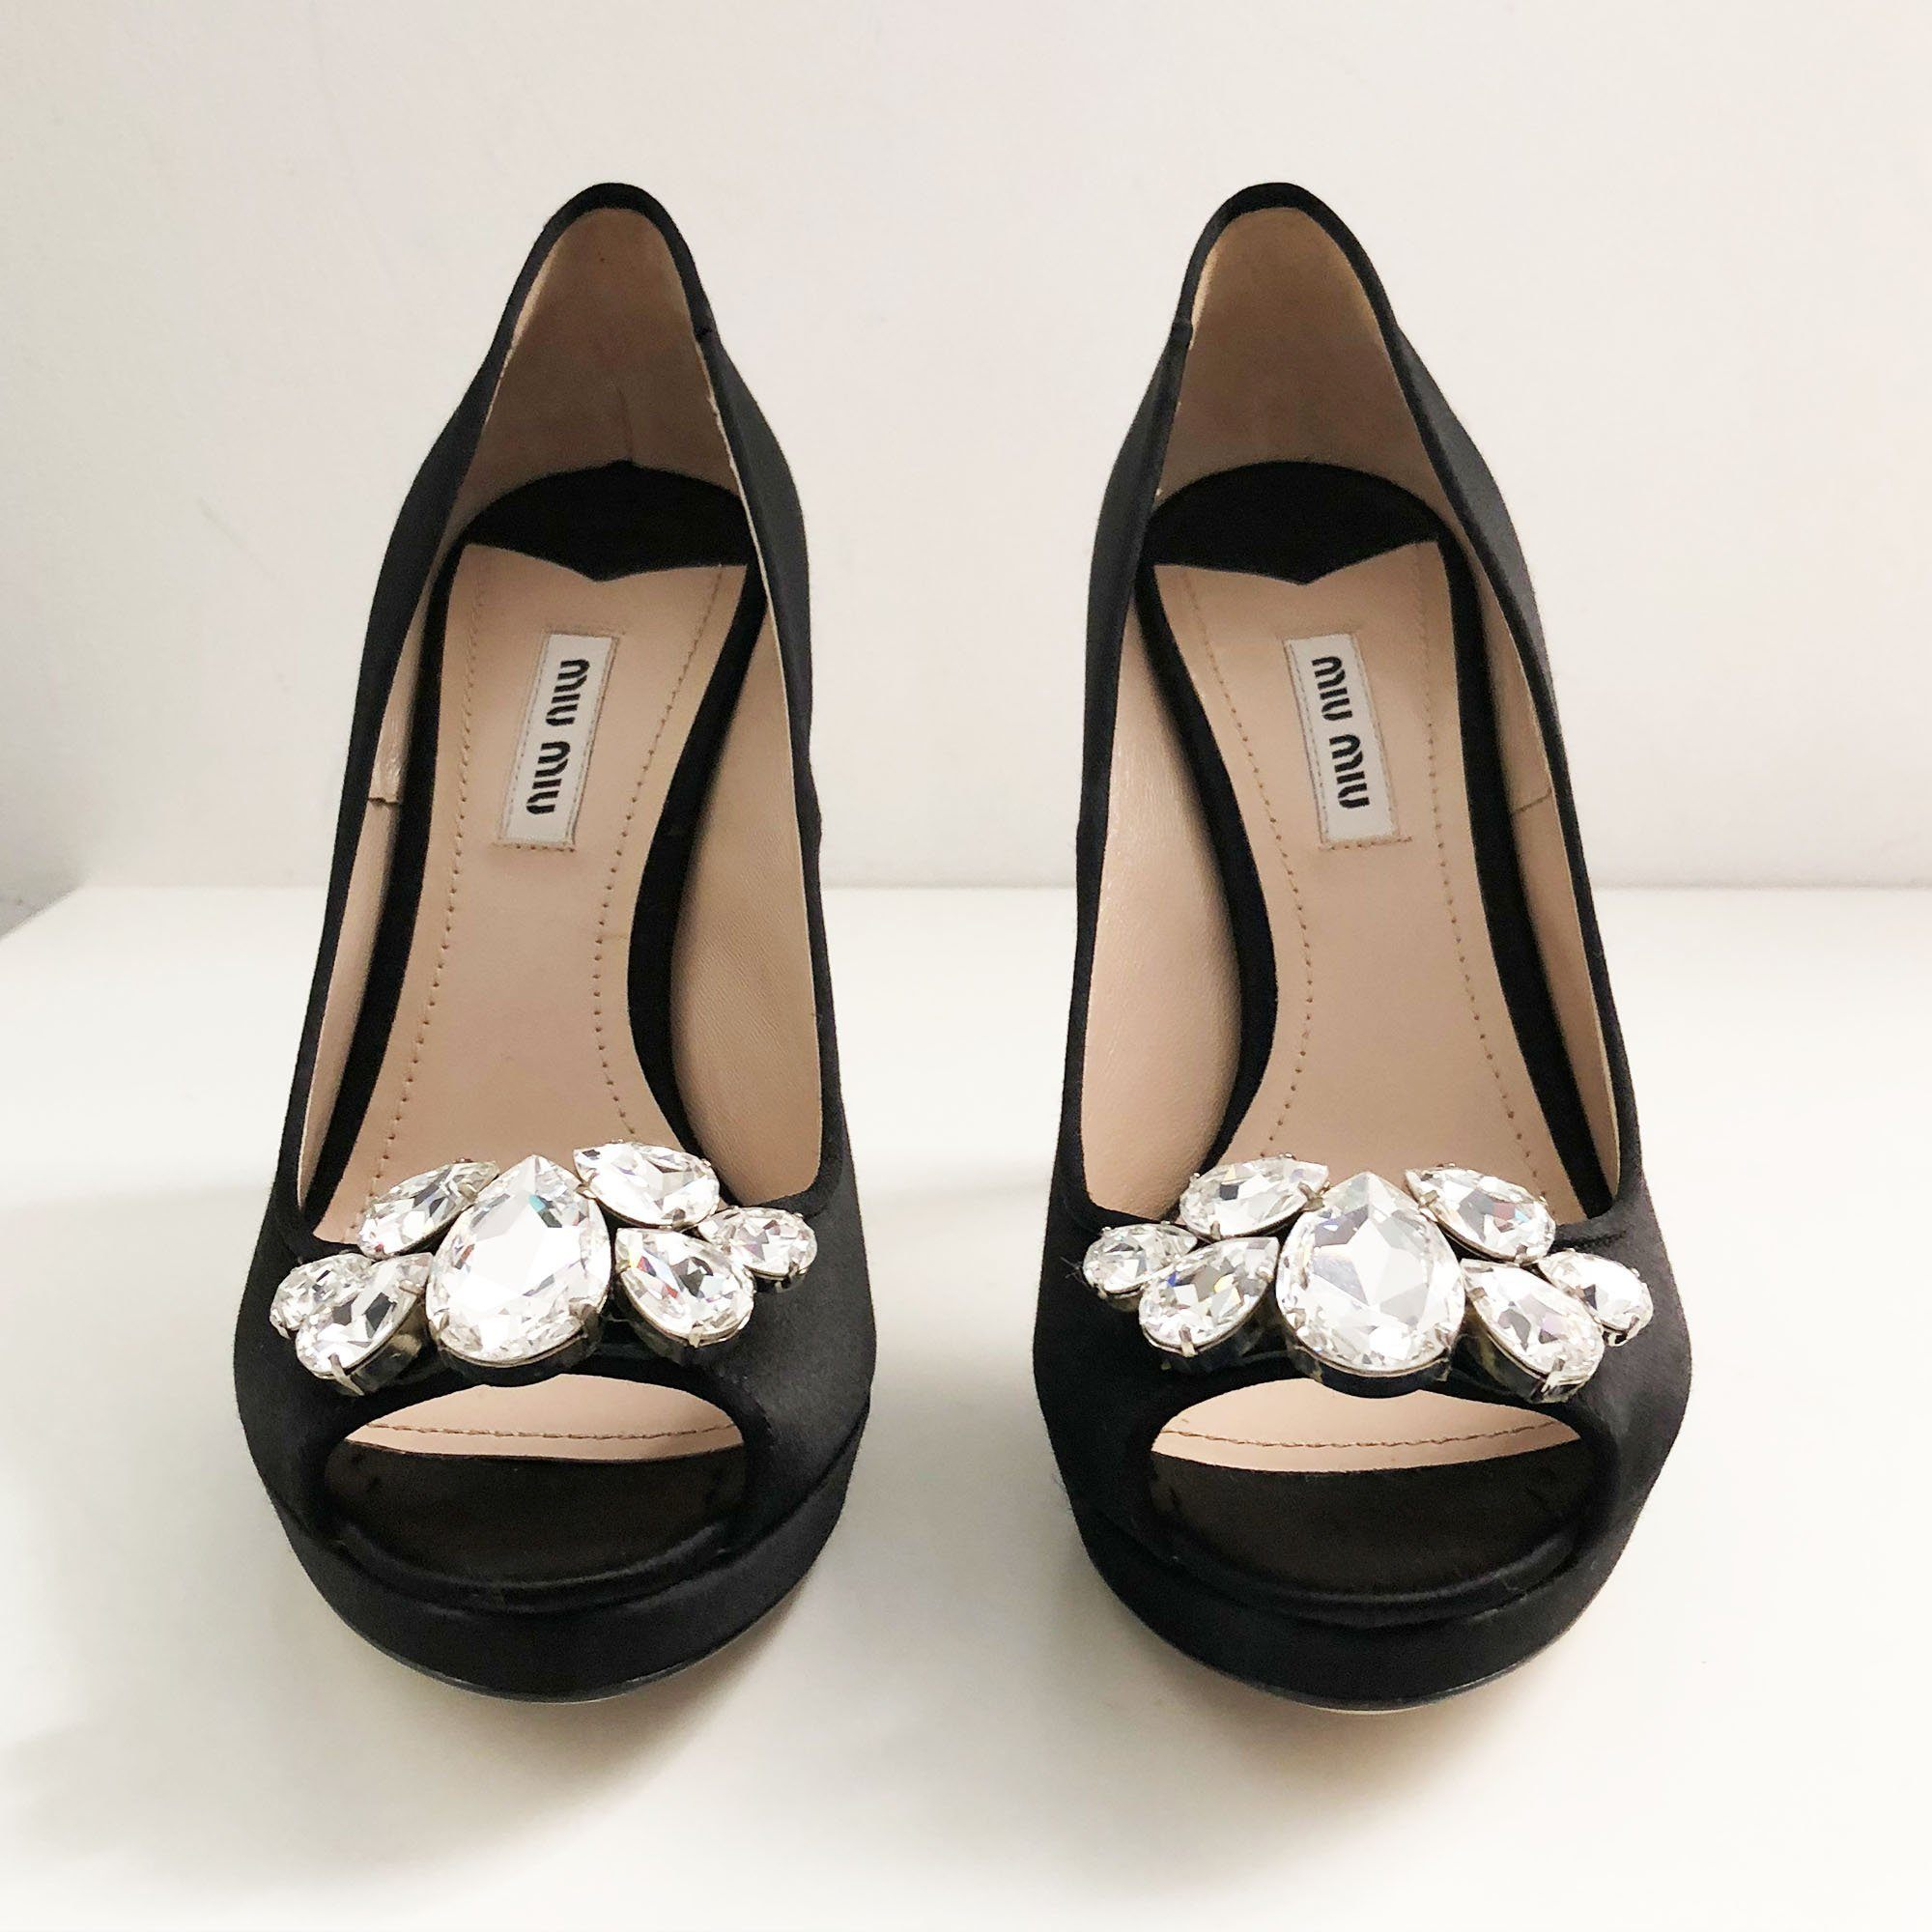 Miu Miu Jeweled Peep-Toe Satin Pumps